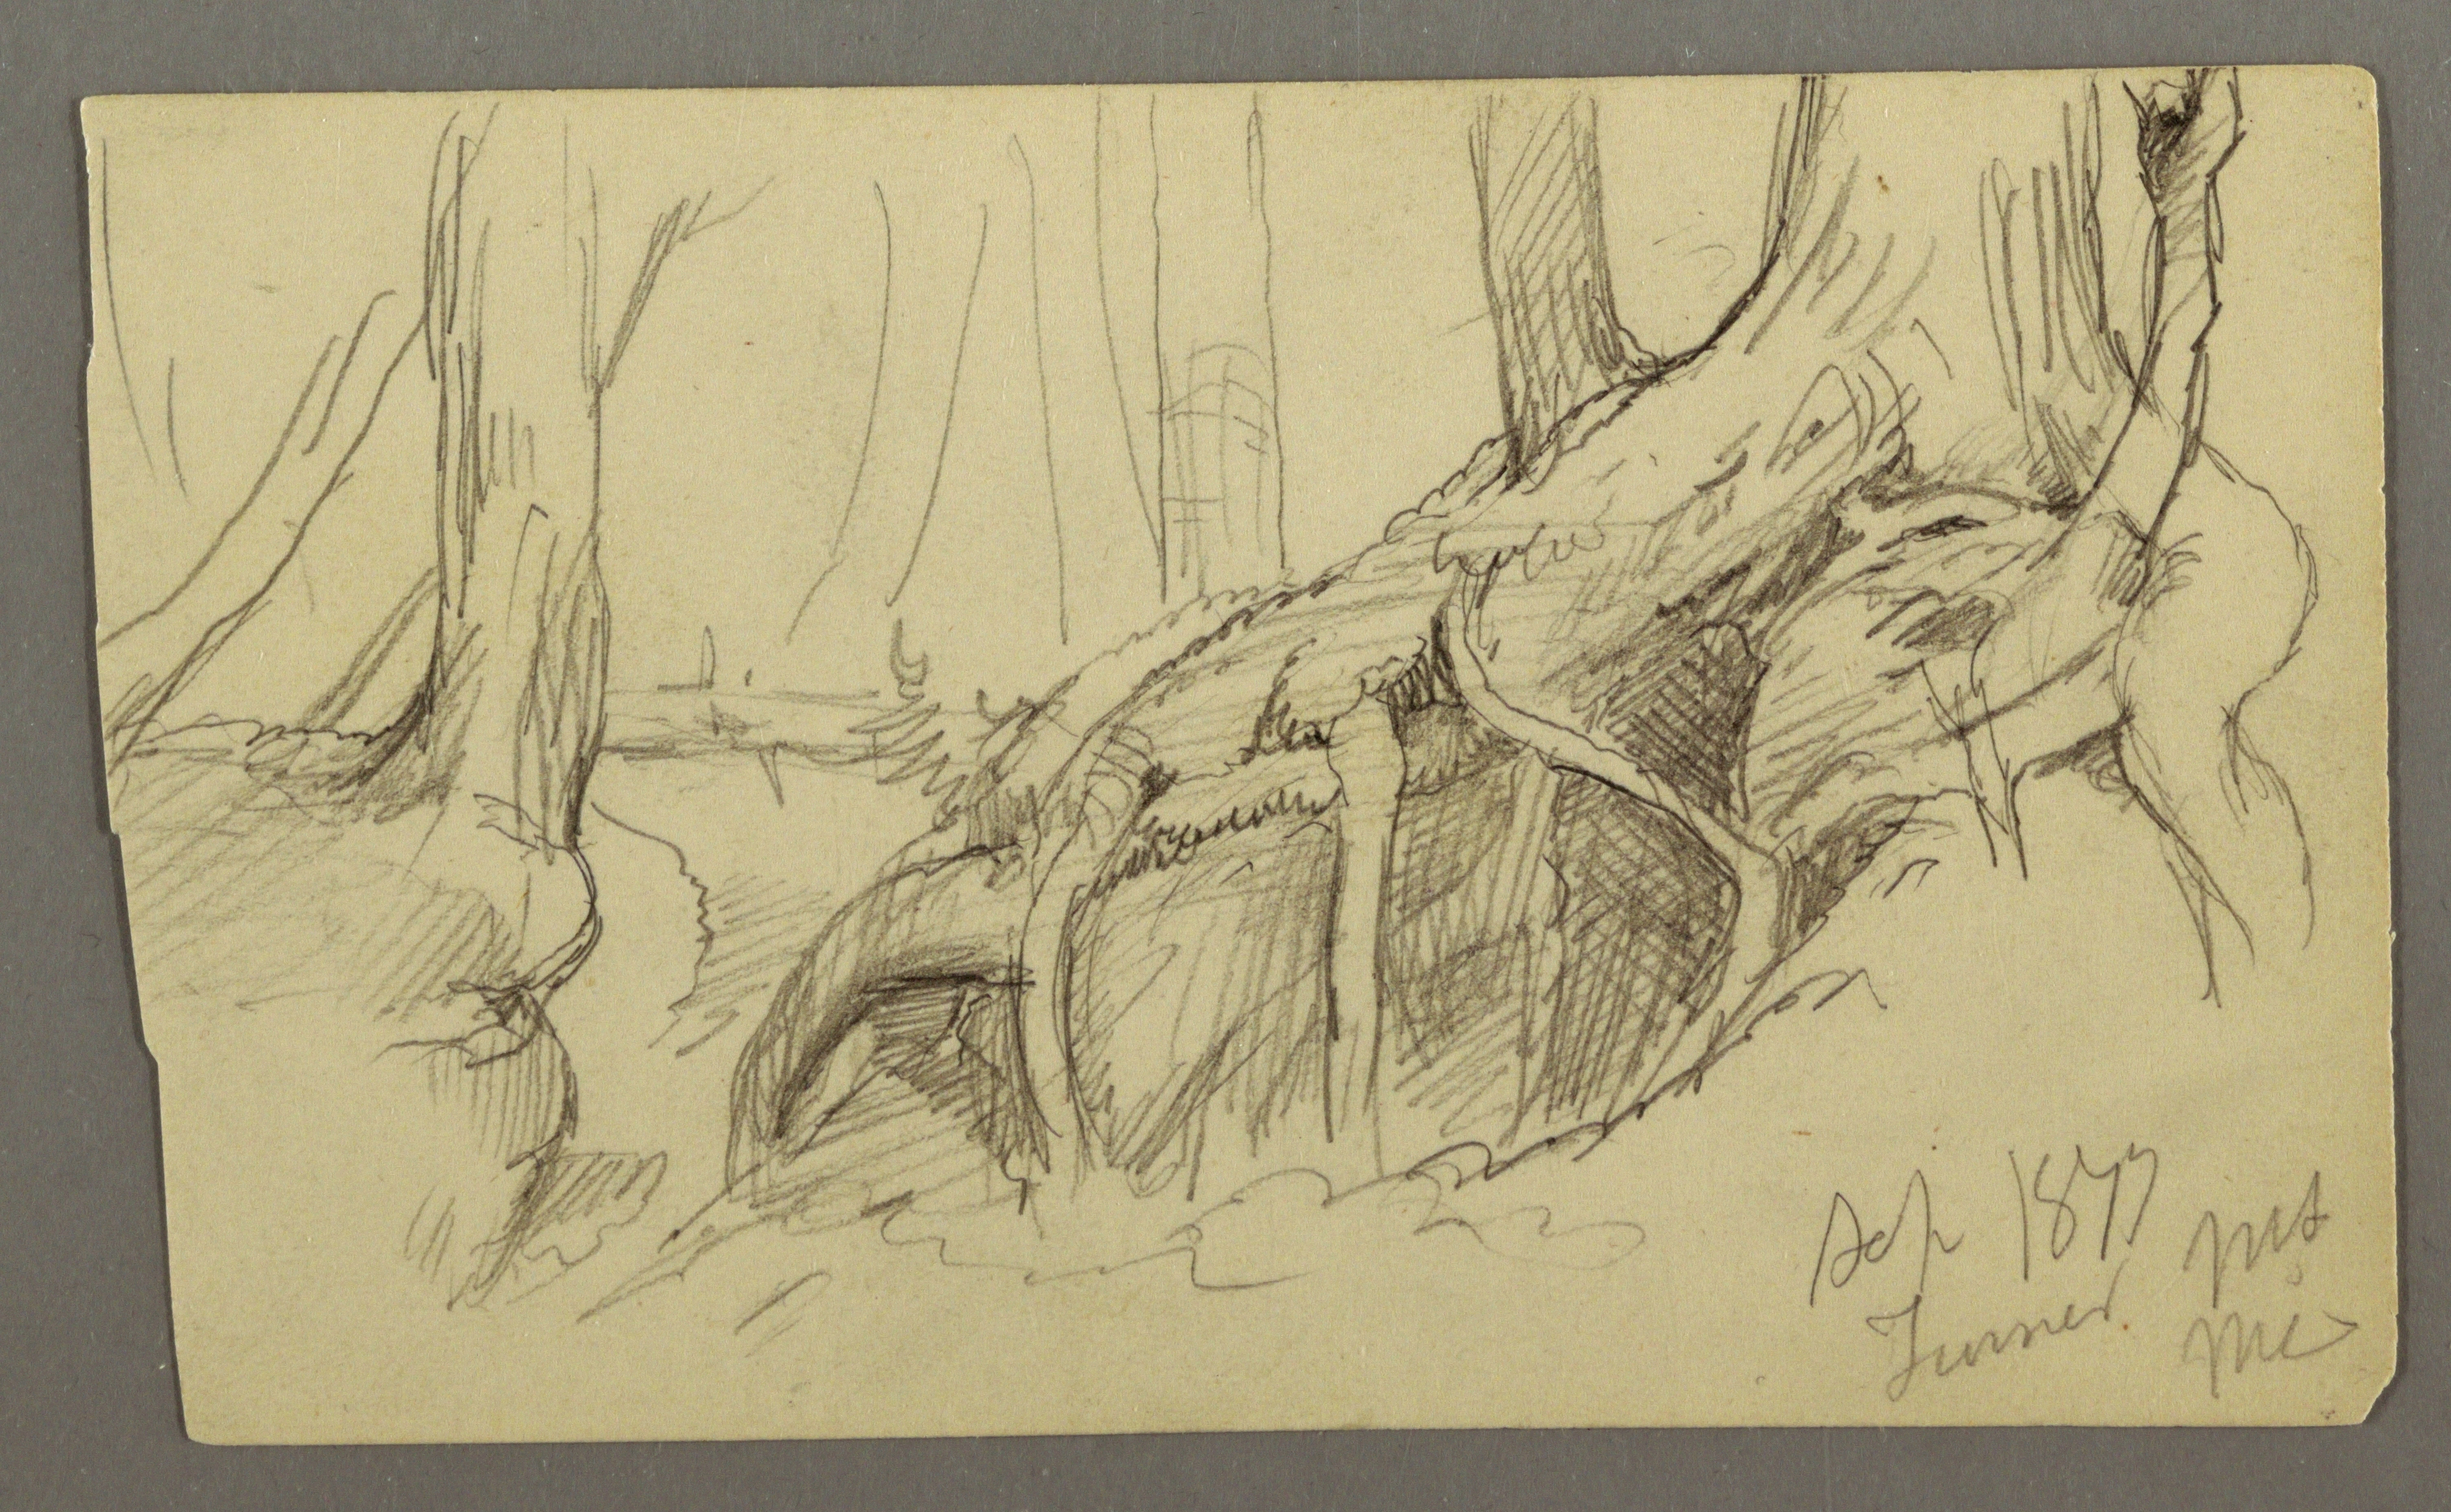 3010x1857 Filedrawing, Tree Rootsgrowing Over A Boulder (Turner Mountain